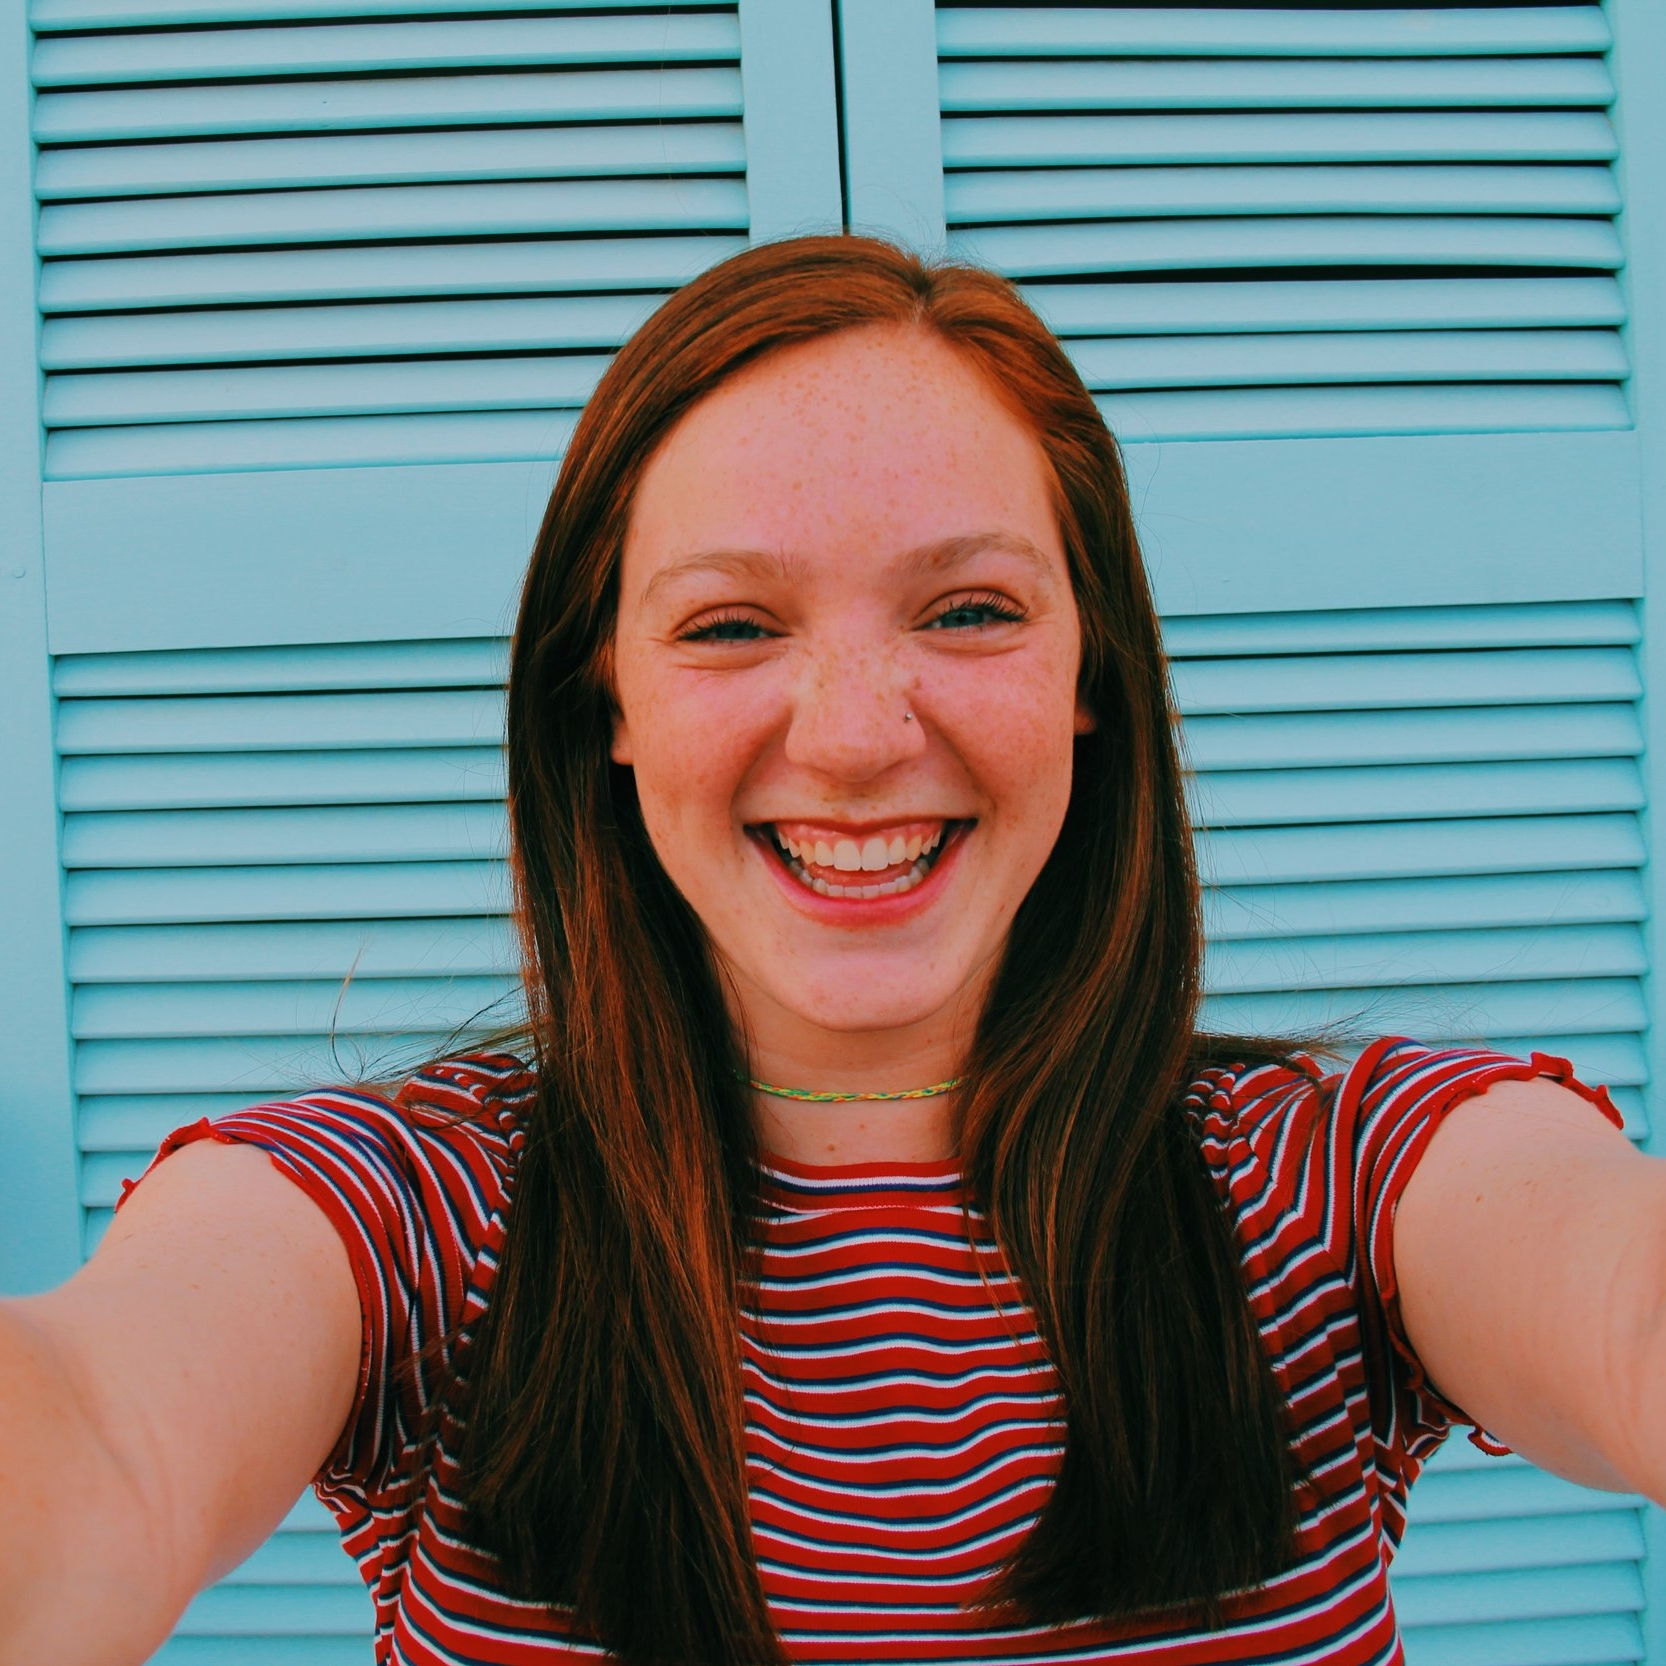 CHLOE STRINGER - I am a 20 year old Criminology student at the University of Arkansas and If you want to win my heart over tell me your hopes and dreams and then sing along to old One Direction in the car with me. A few things I'm a little obsessed with are Harry Styles, road trips, podcasts, true crime, coffee, and fighting for an America with true equality.Fayetteville, AR